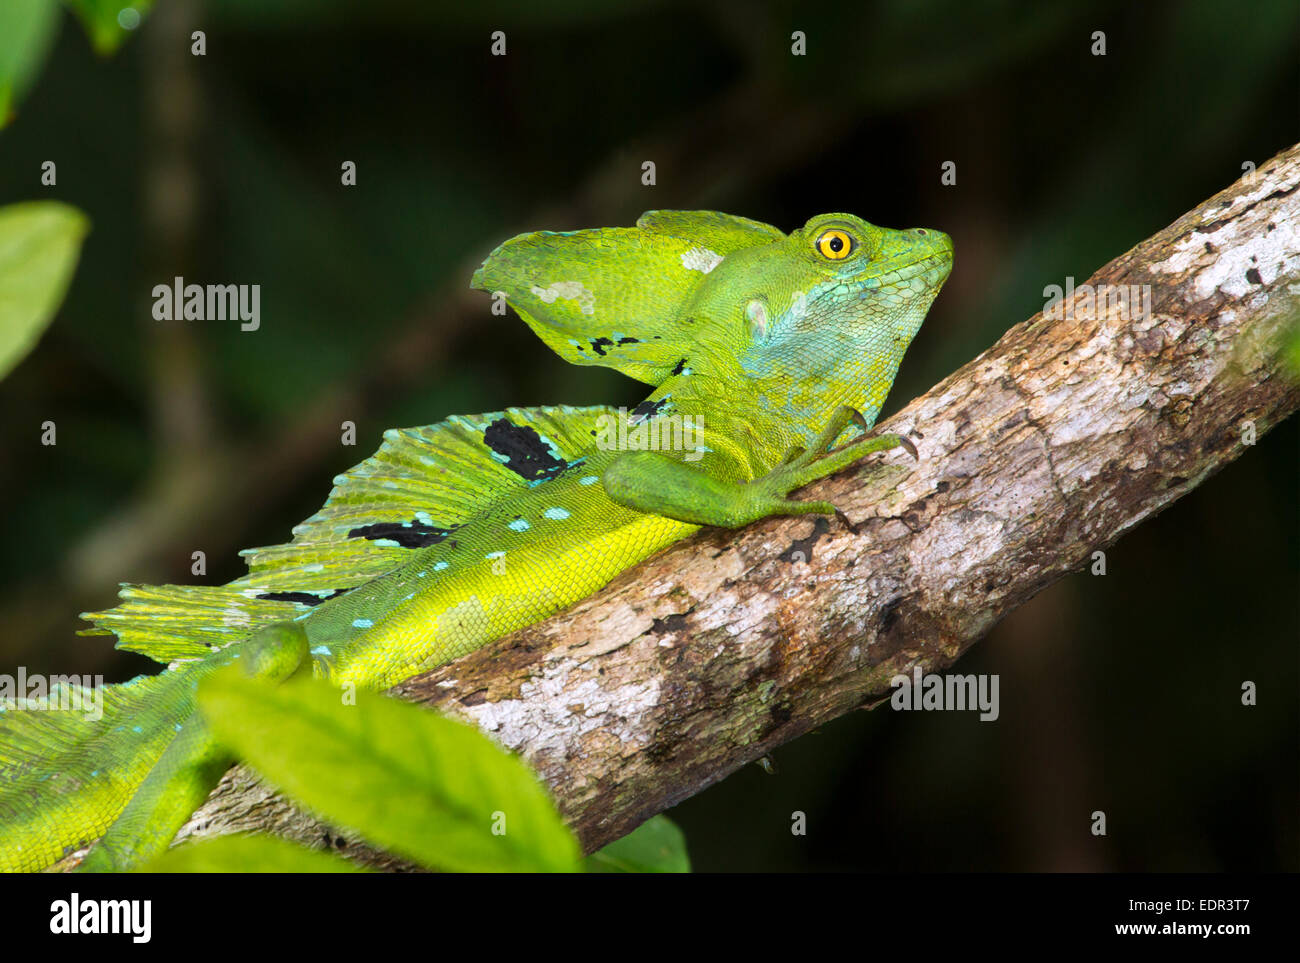 Plumed or green basilisk (Basiliscus plumifrons) in a tree, Tortuguero, Costa Rica. - Stock Image